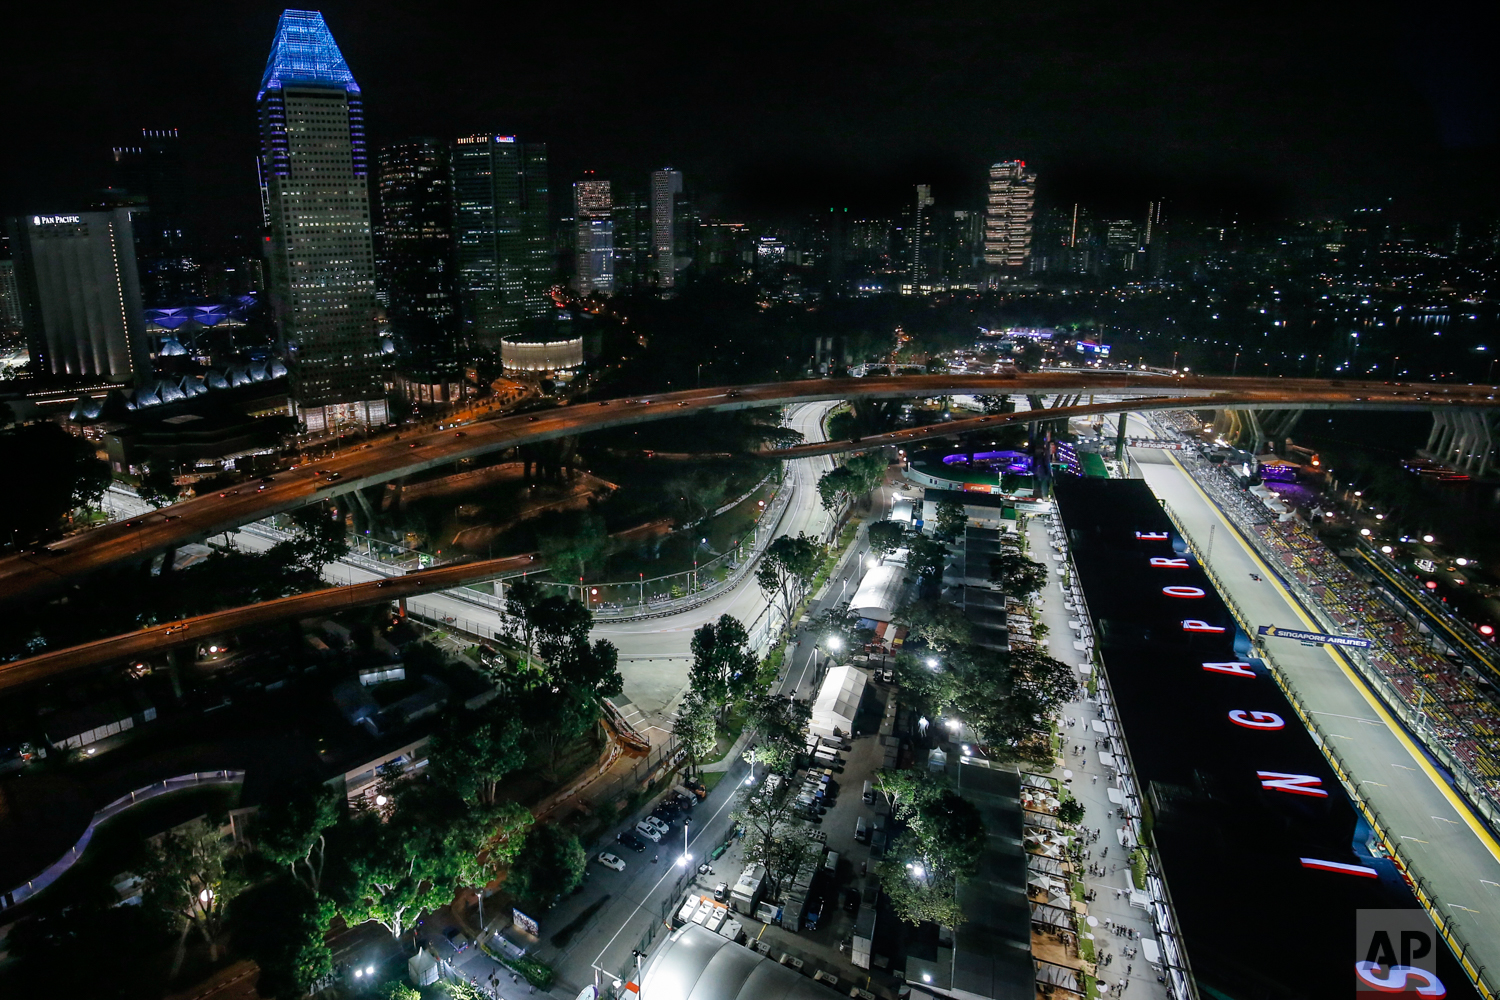 The Singapore F1 Grand Prix's Marina Bay City Circuit is lit during the second practice session at the Singapore Formula One Grand Prix on the Marina Bay City Circuit Singapore, Friday, Sept. 15, 2017. (AP Photo/Yong Teck Lim)